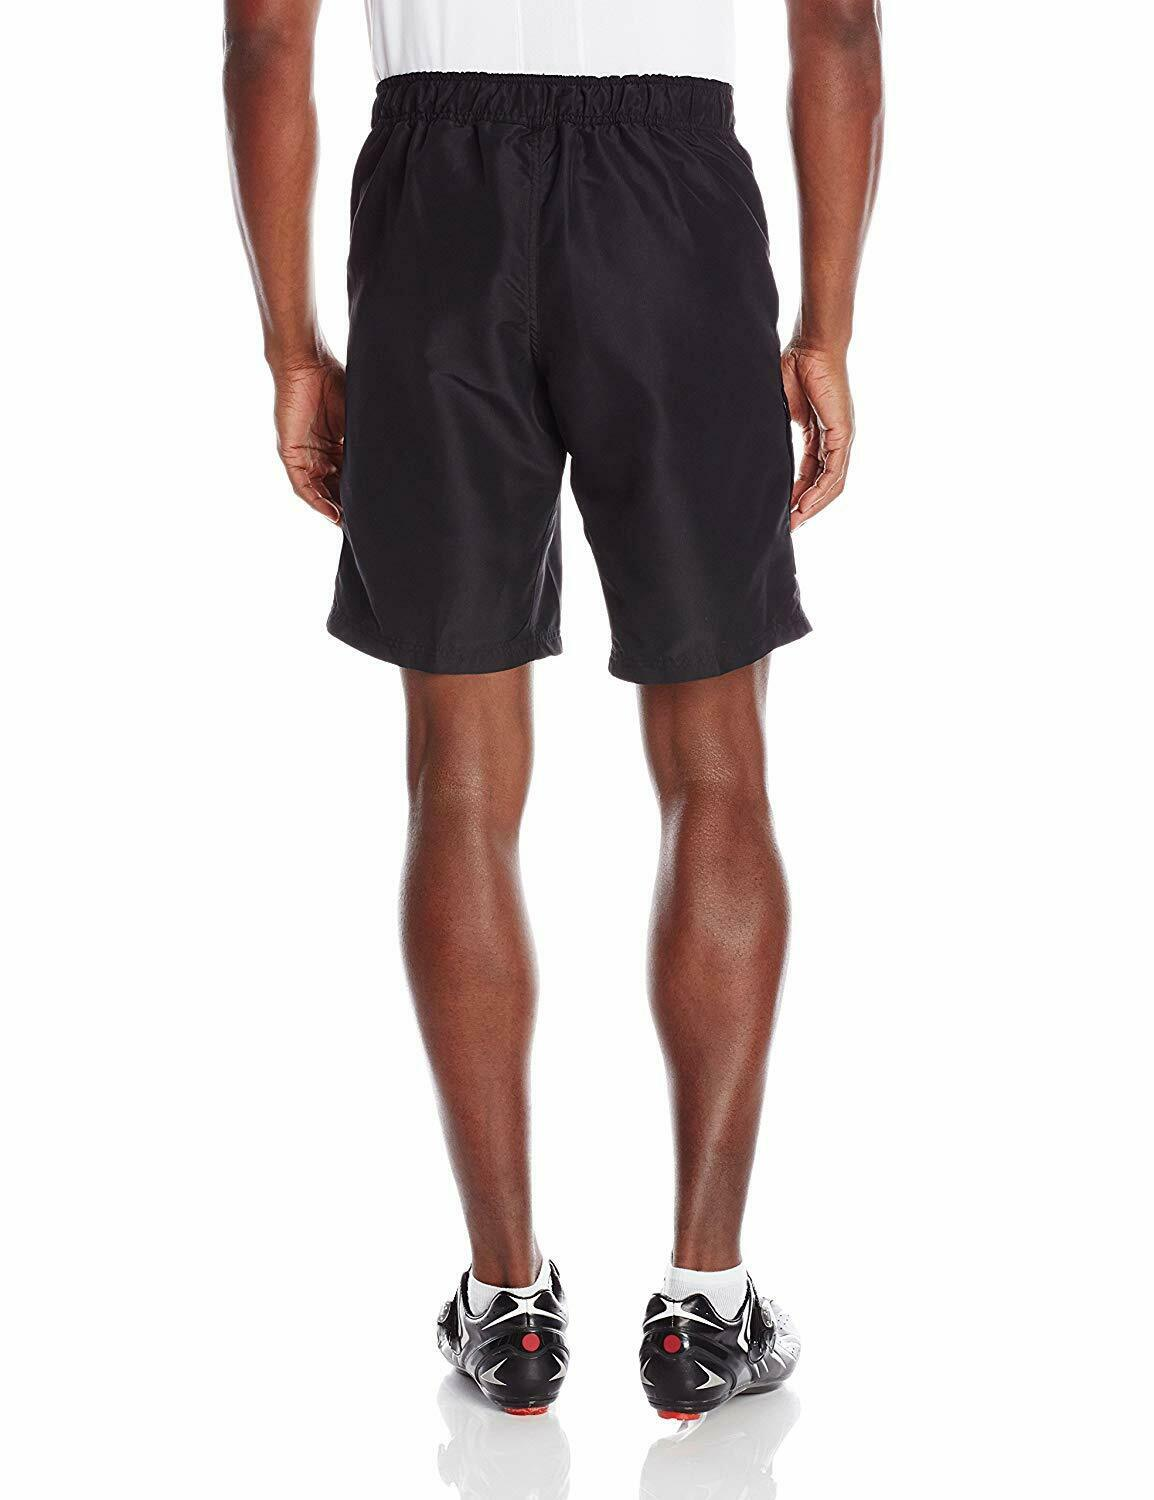 Canari Men's  Paramount Baggy Cycling Shorts, Small, Detachable Padded Liner  outlet sale